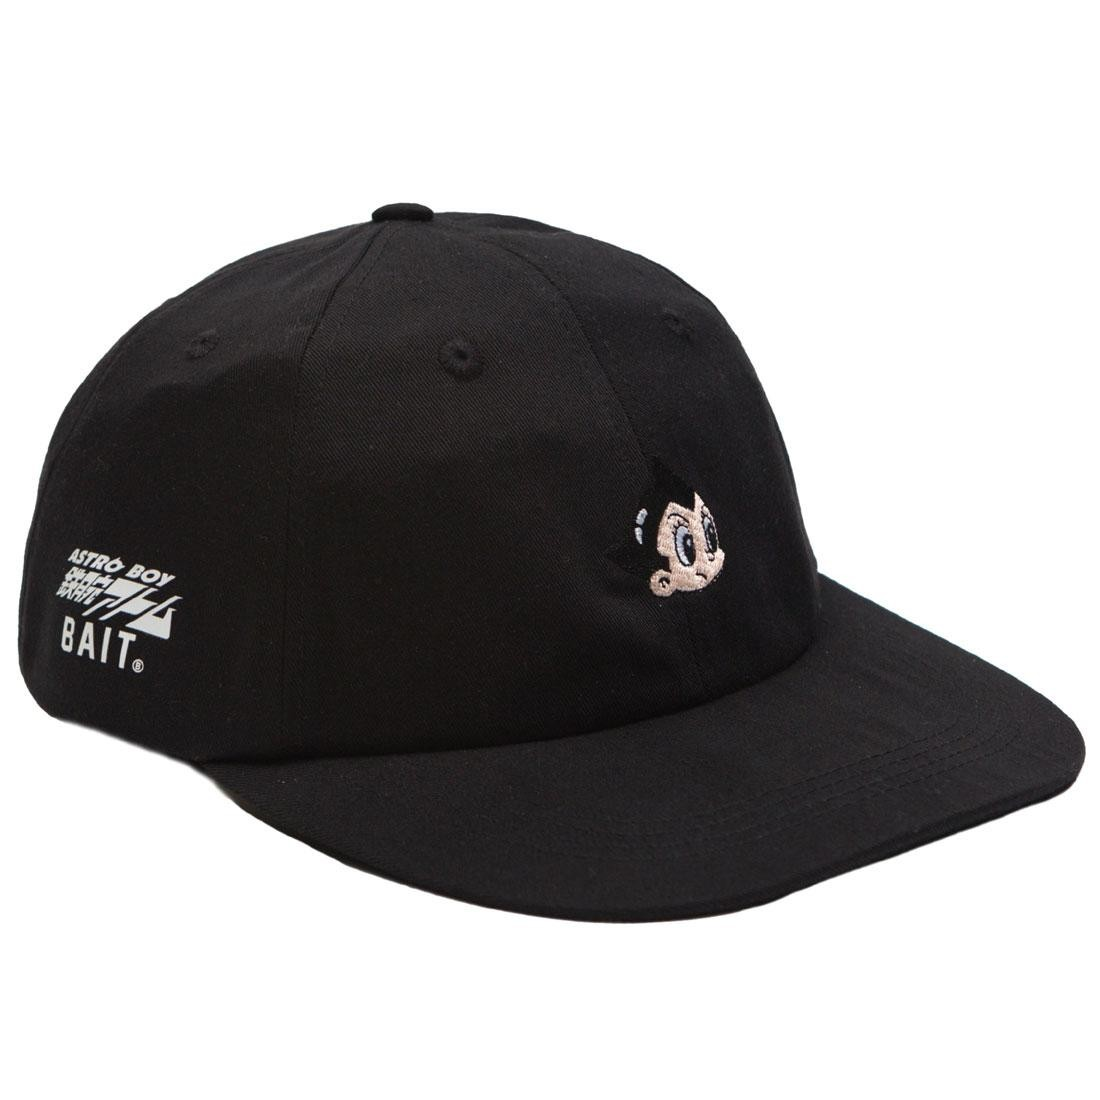 BAIT x Astro Boy Head Dad Cap (black)